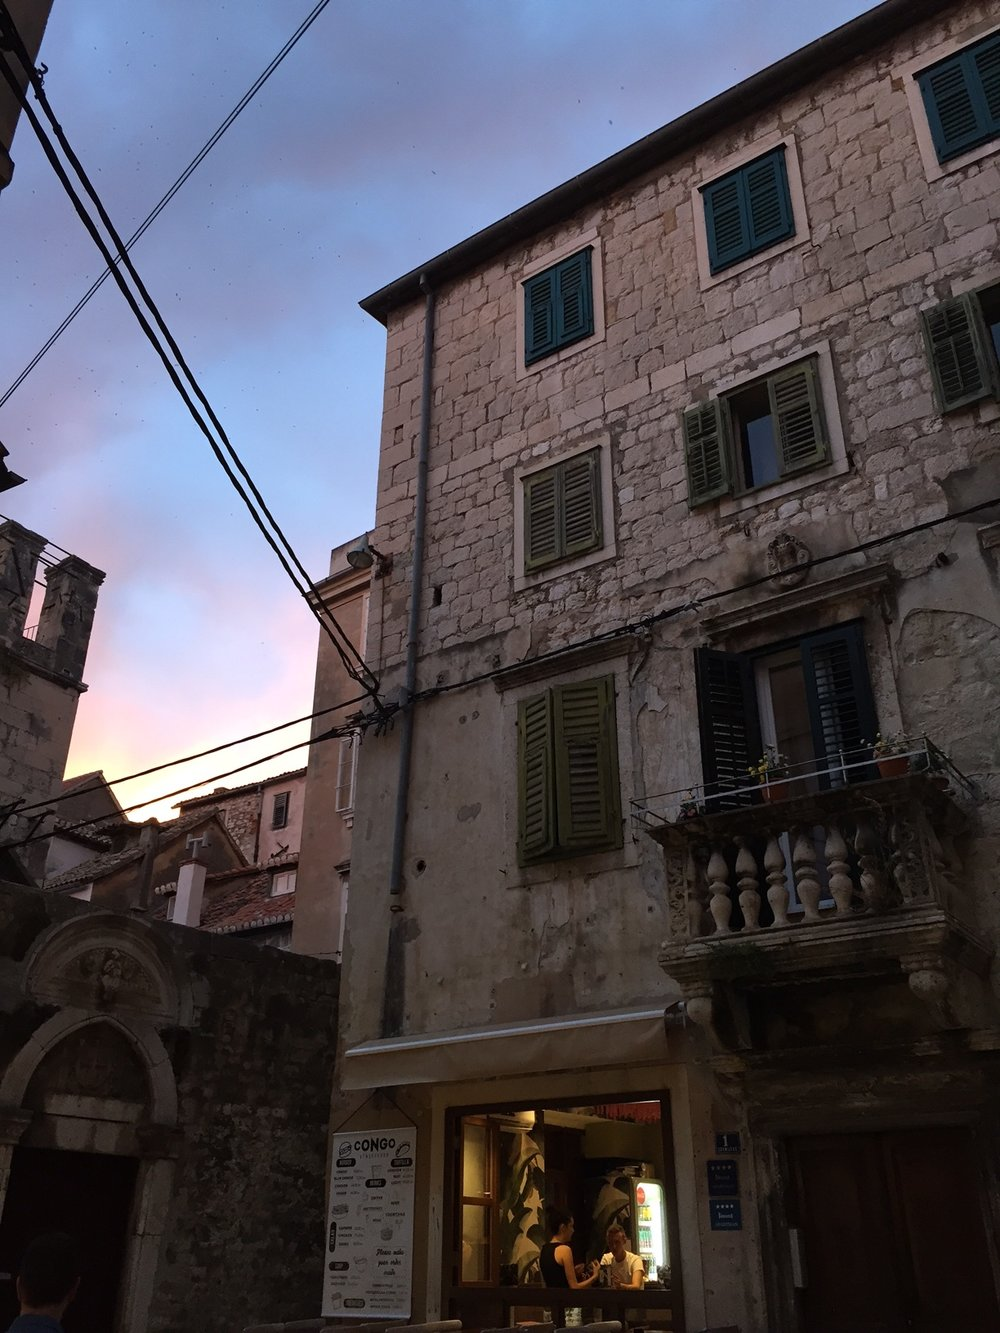 Split Old Town captured just as the sun was setting